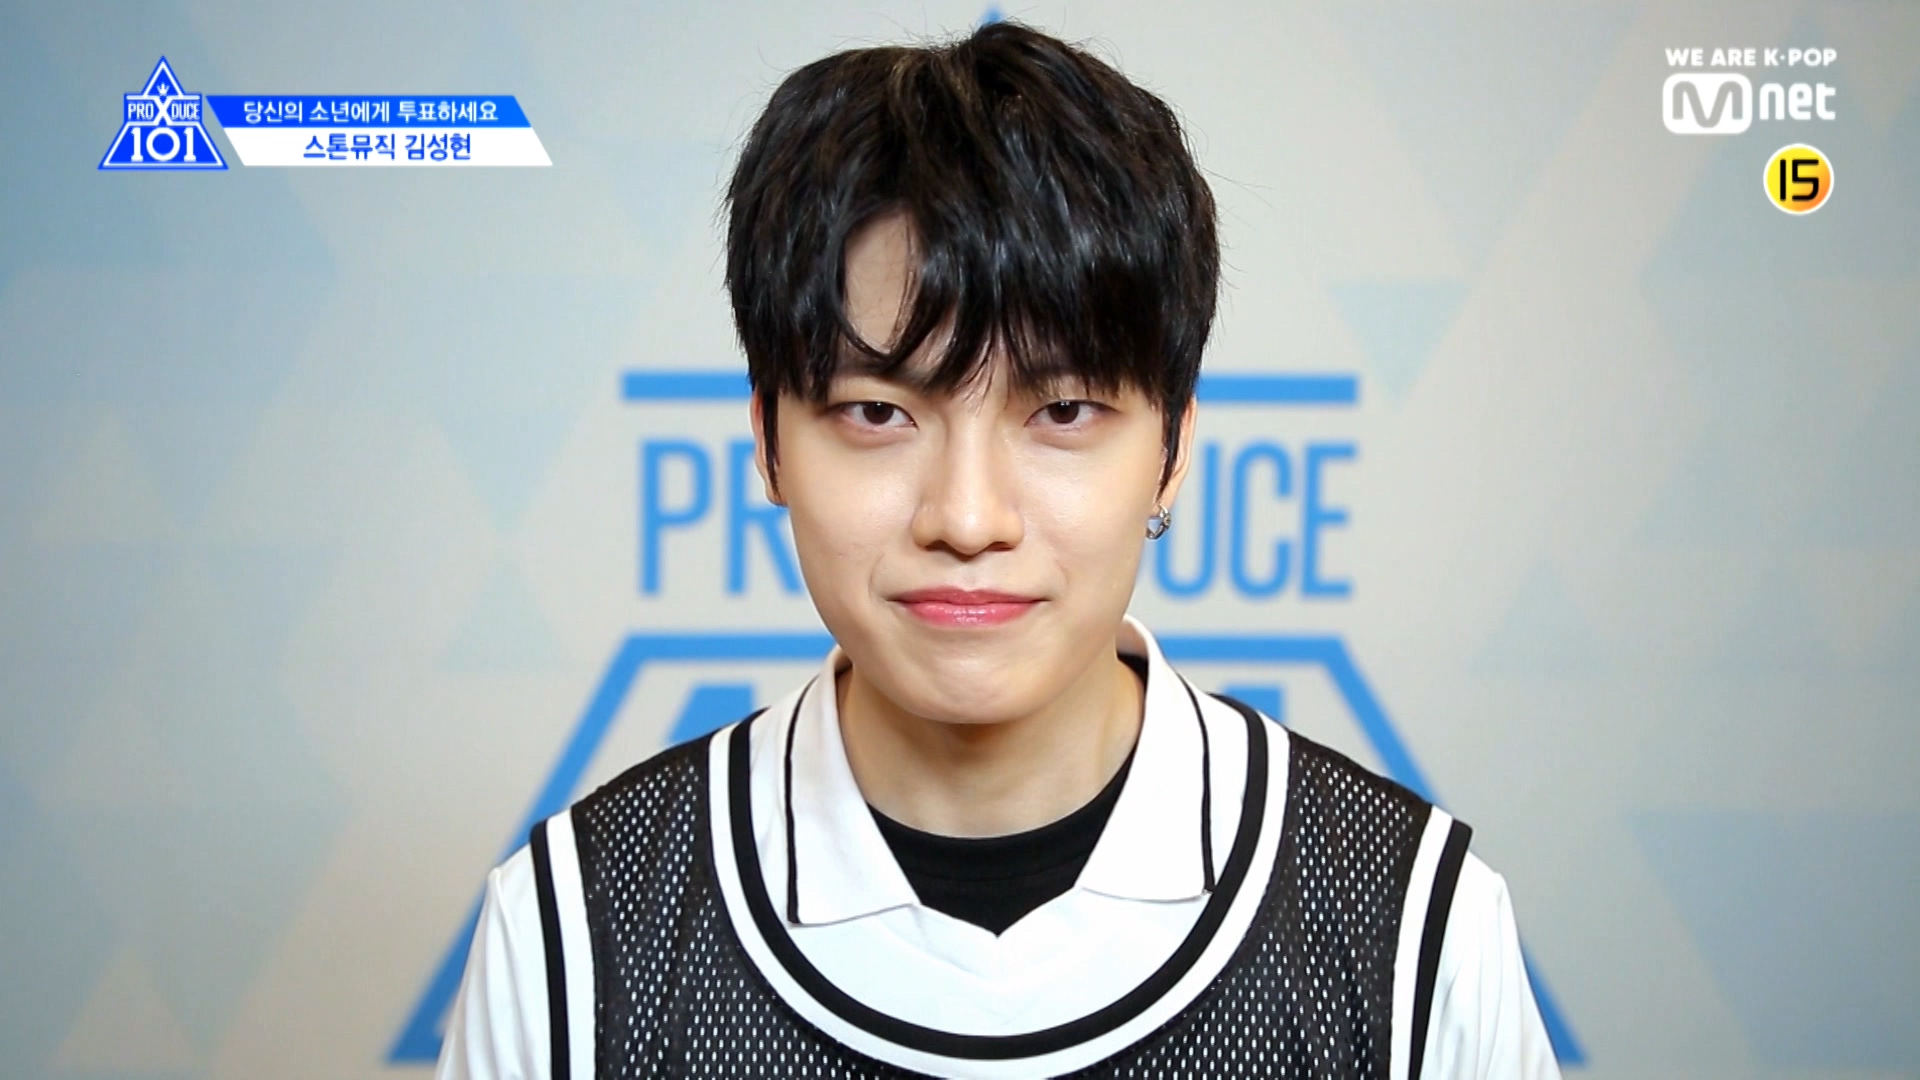 [PRODUCE X 101] EYE CONTACT CHALLENGE l KIM SUNG HYUN(STONE MUSIC)